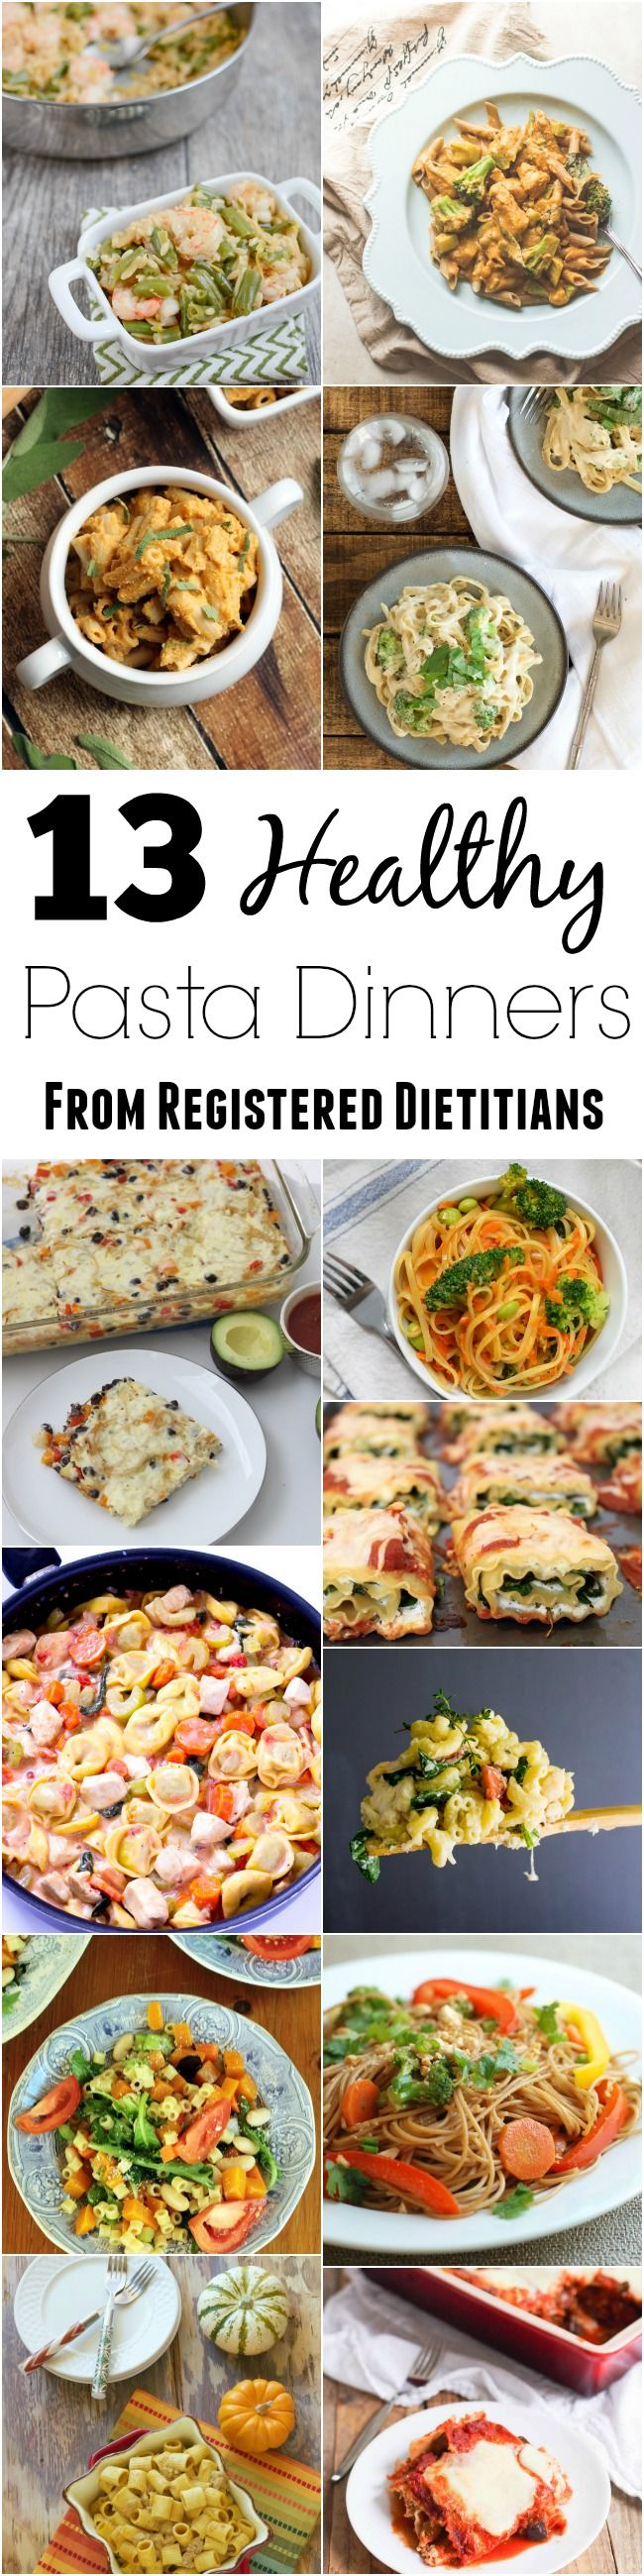 Looking for some new easy dinner recipes? Here are 13 healthy pasta recipes to try this month, all developed by Registered Dietitians in partnership with @pastafits & @healthyaperture